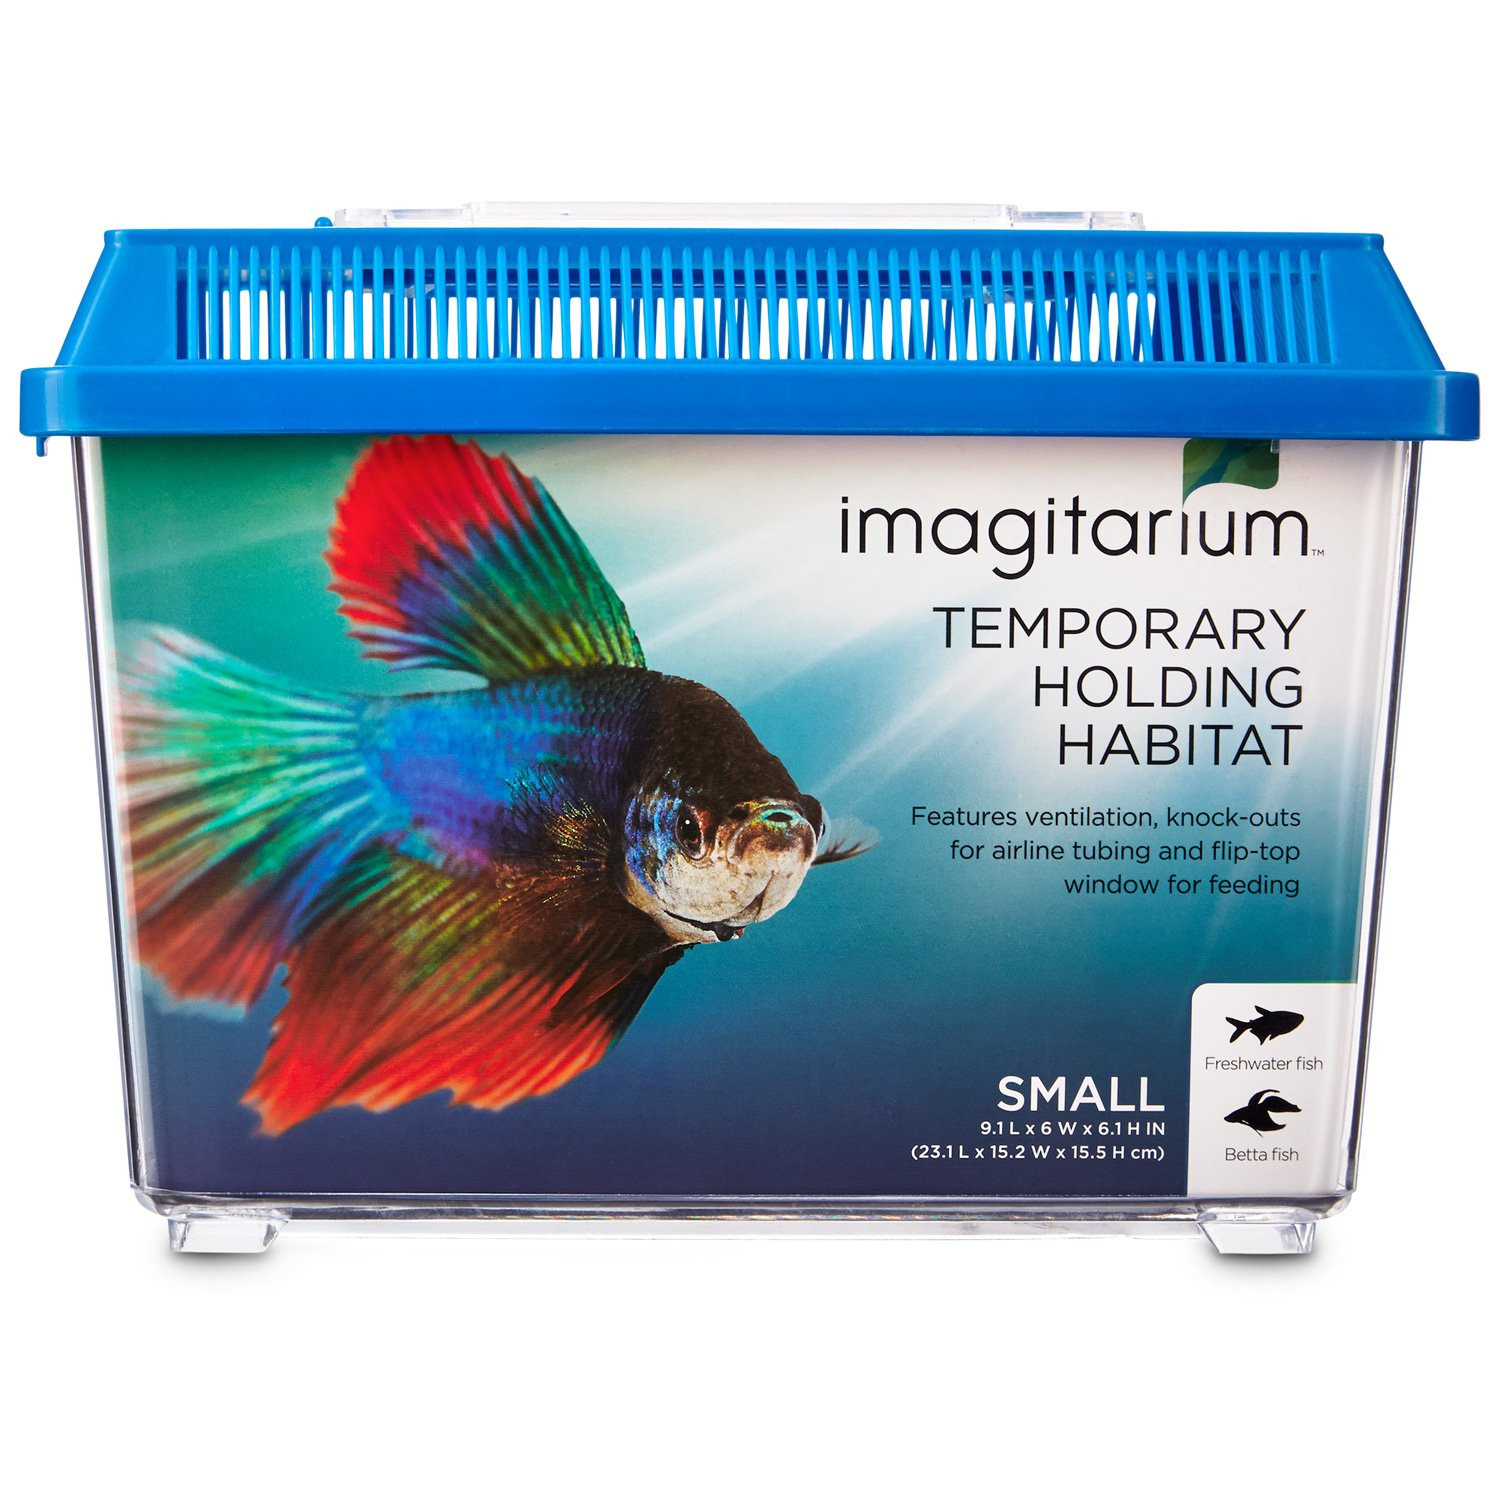 Imagitarium pet keeper for aquarium fish small petco store for Types of betta fish petco